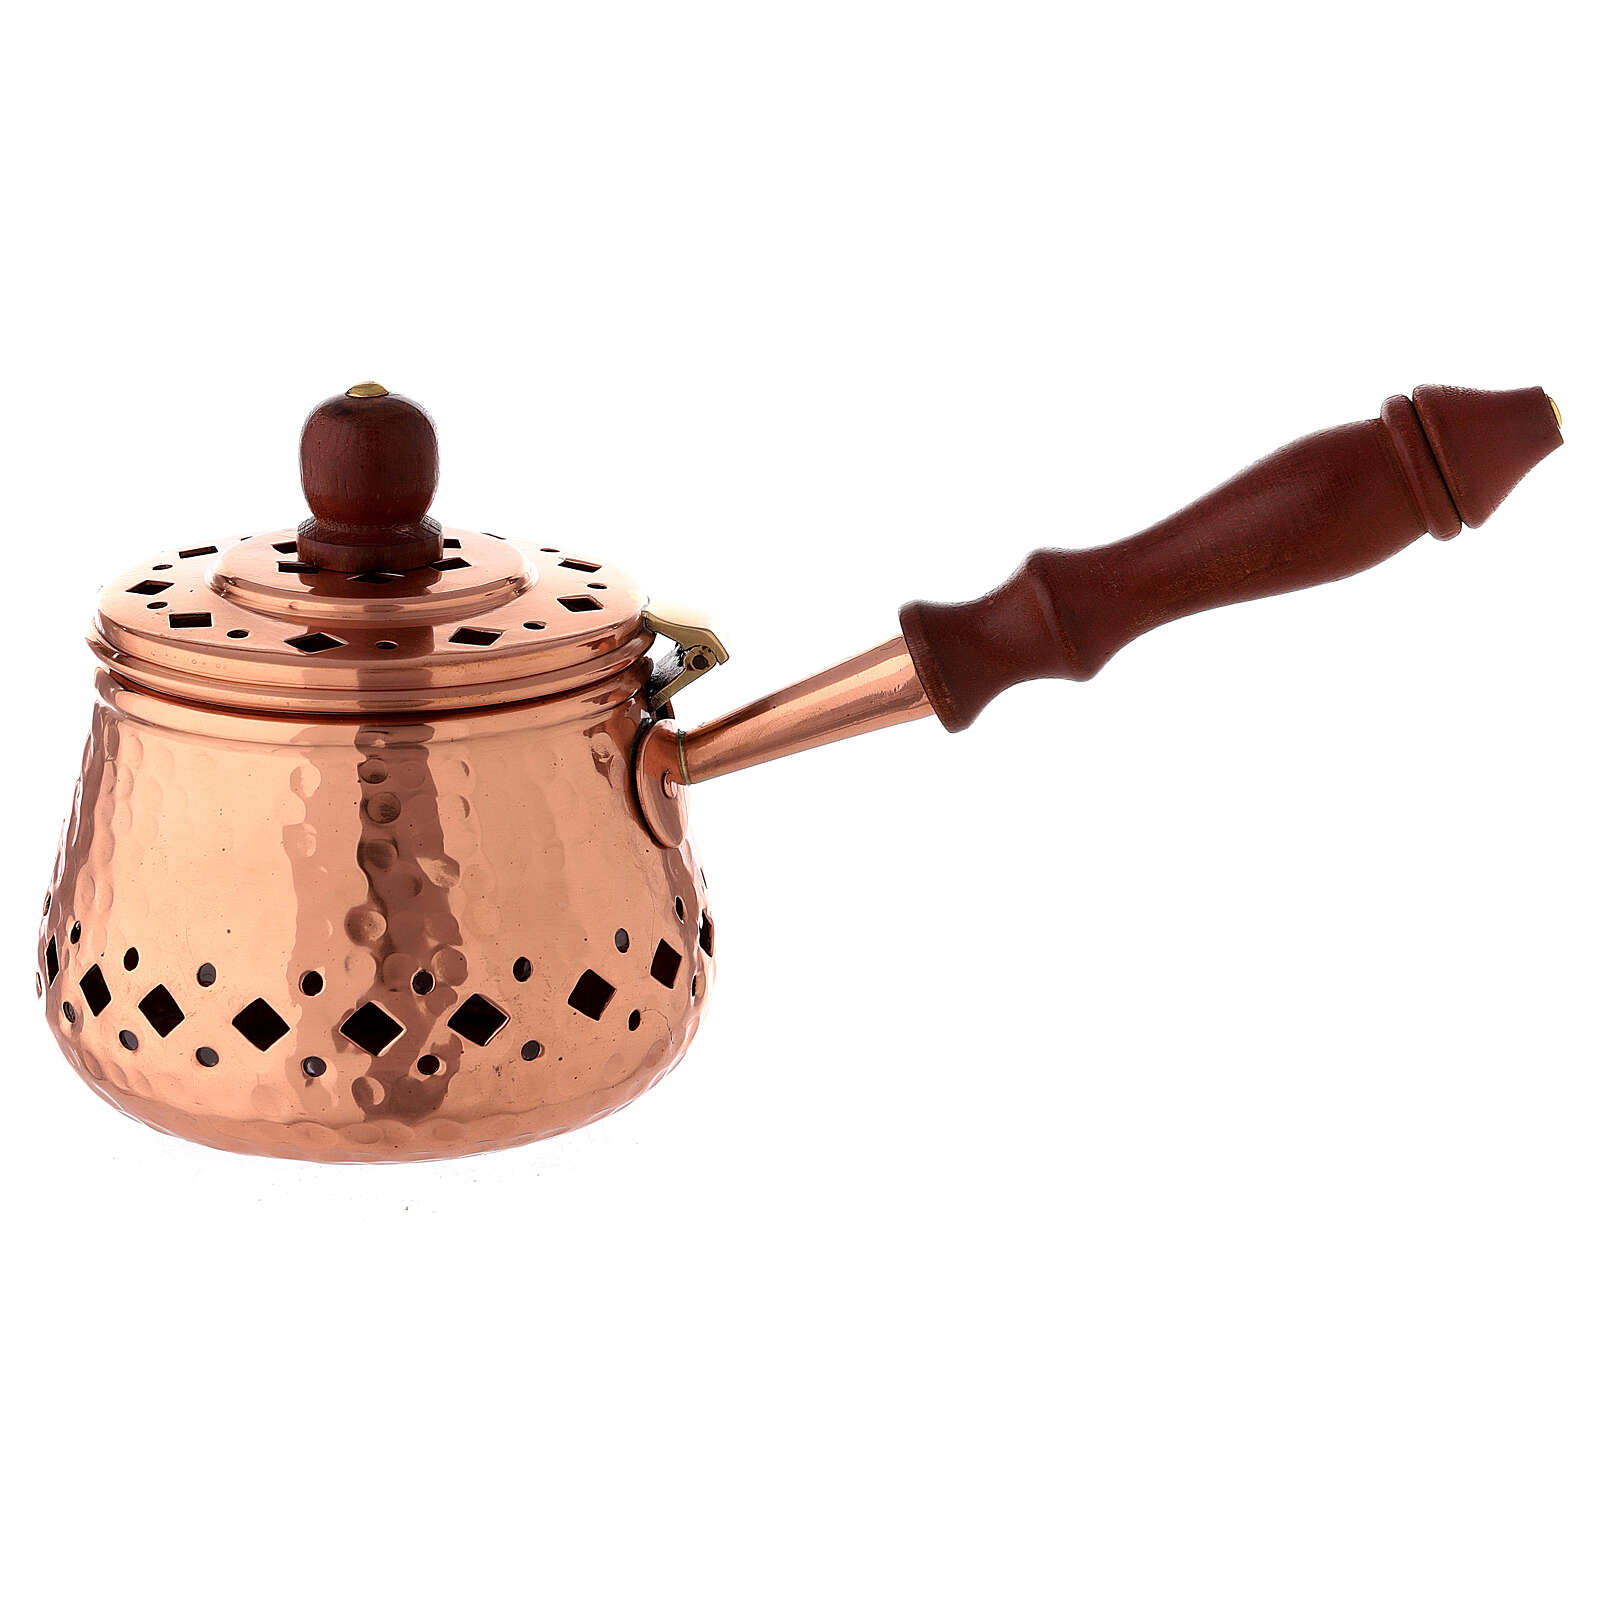 Engraved copper incense burner with wood handle 3 1/2 in diameter 3